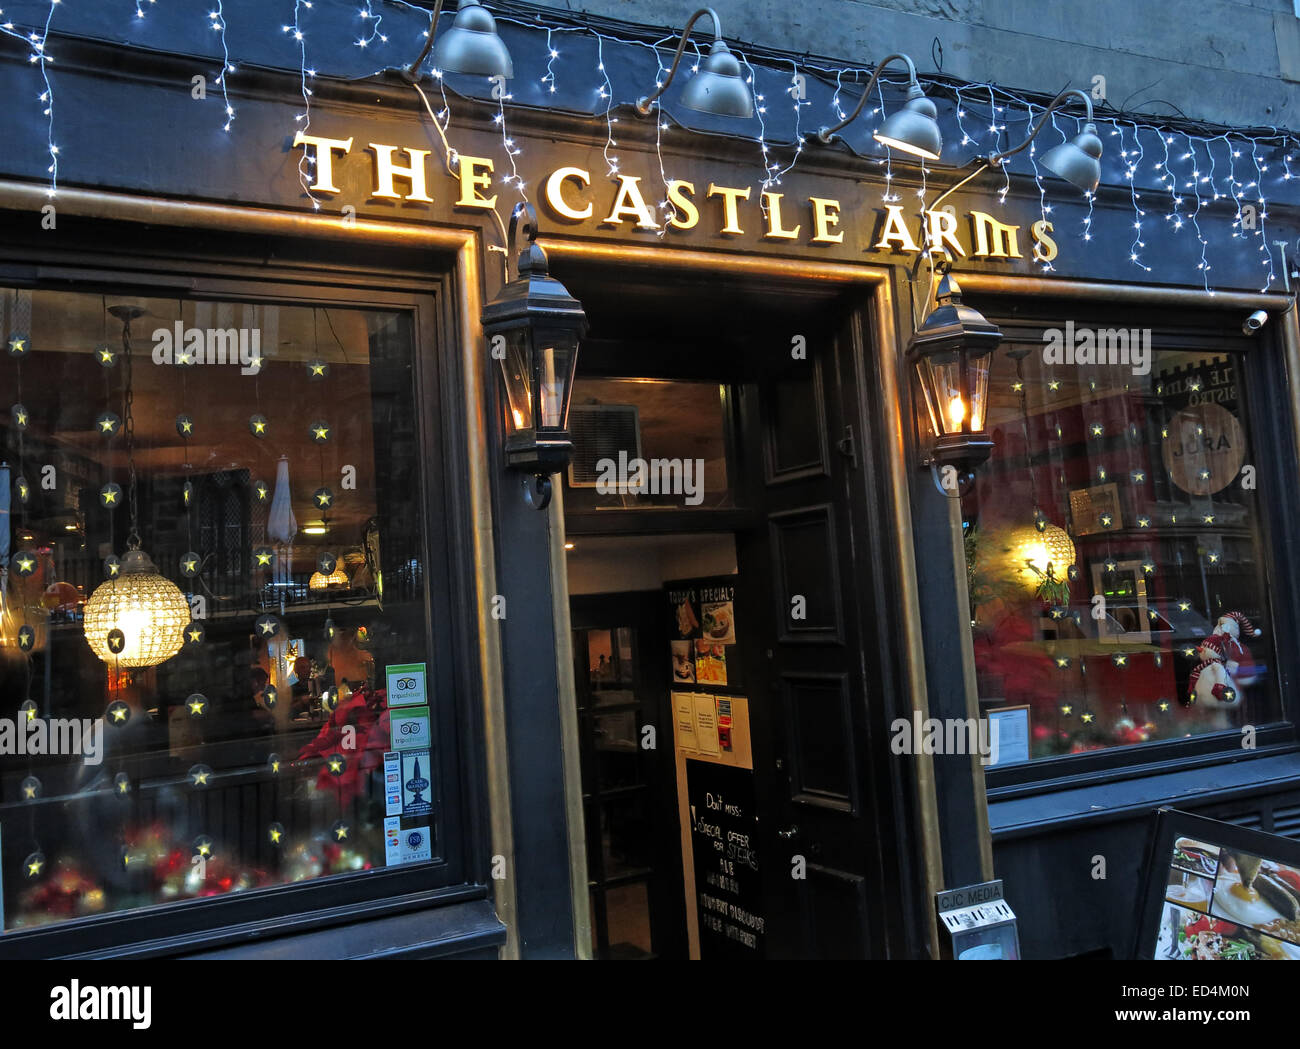 real,ale,camra,beer,bar,bars,outside,exterior,Xmas,Christmas,lights,welcoming,for,tourists,tourism,traditional,hostelry,mulled,wine,grassmarket,GoTonySmith